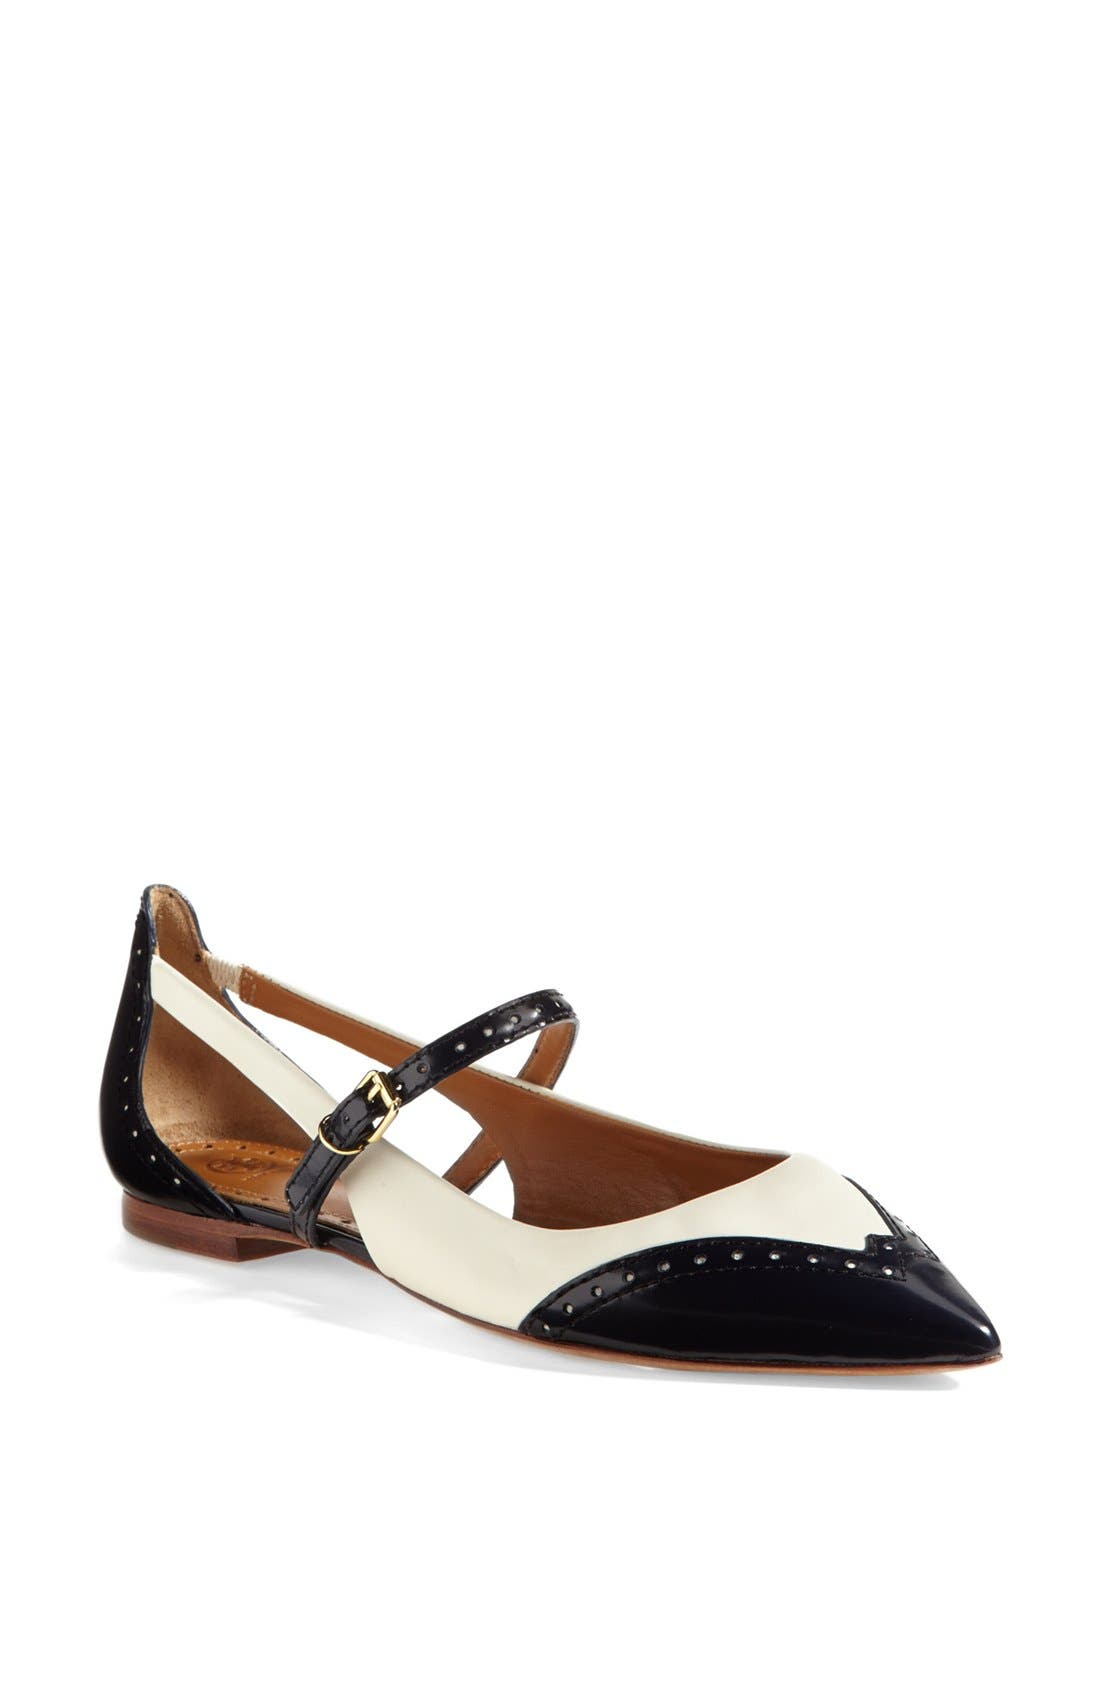 Alternate Image 1 Selected - Tory Burch 'Bernadette' Flat (Online Only)